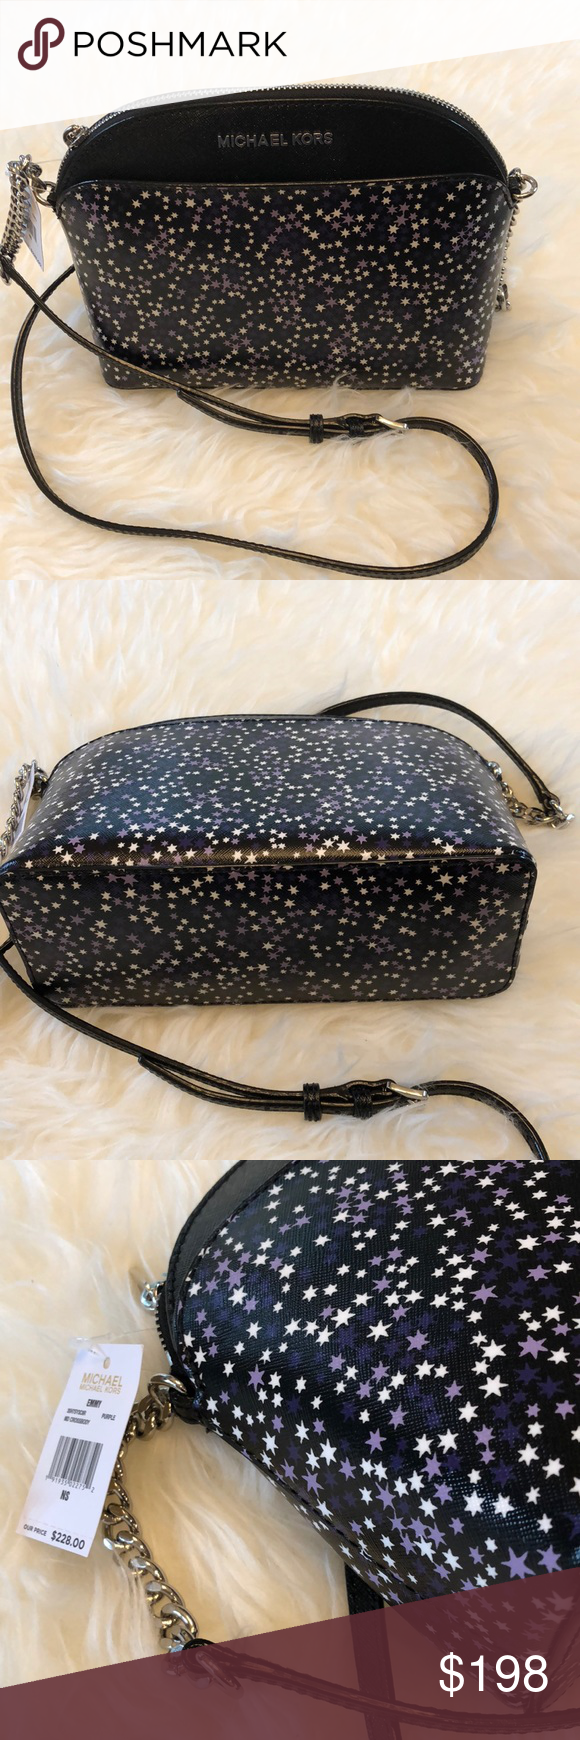 43964f90d09540 Michael Kors Emmy Black w/ Purple Stars Crossbody Super fun. New with tags.  Emmy - Black with purple and white dome style crossbody purse.